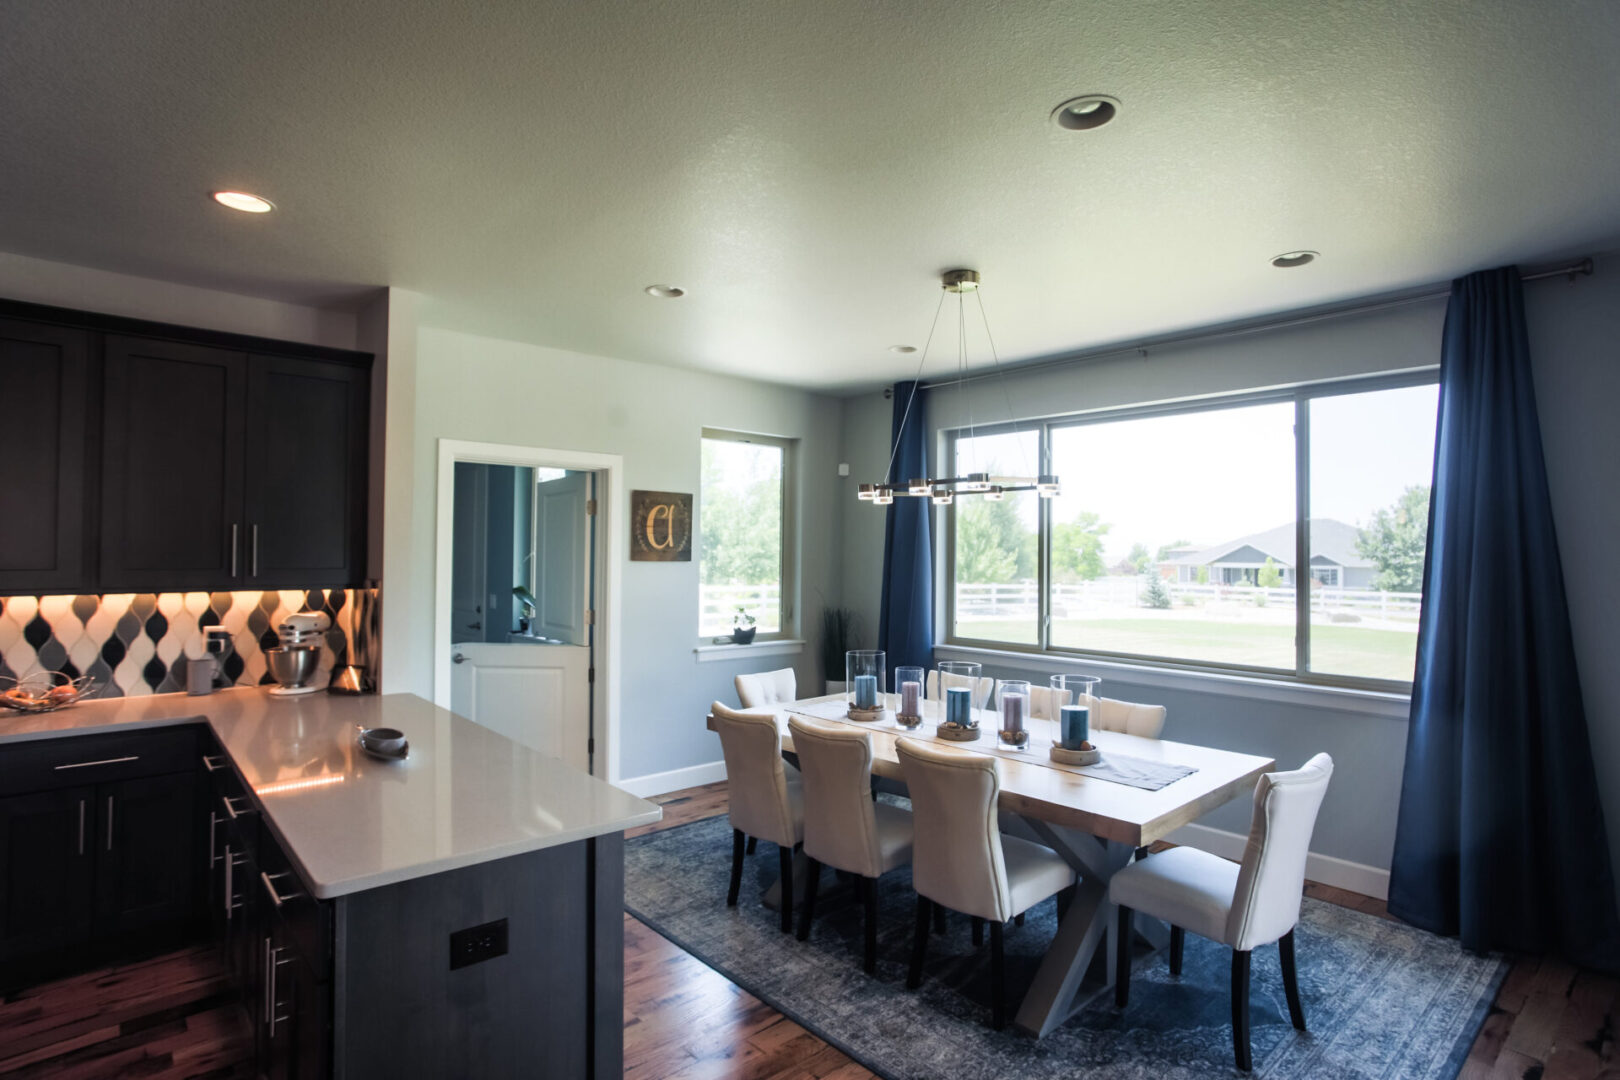 kitchen and dining area with outdoor view